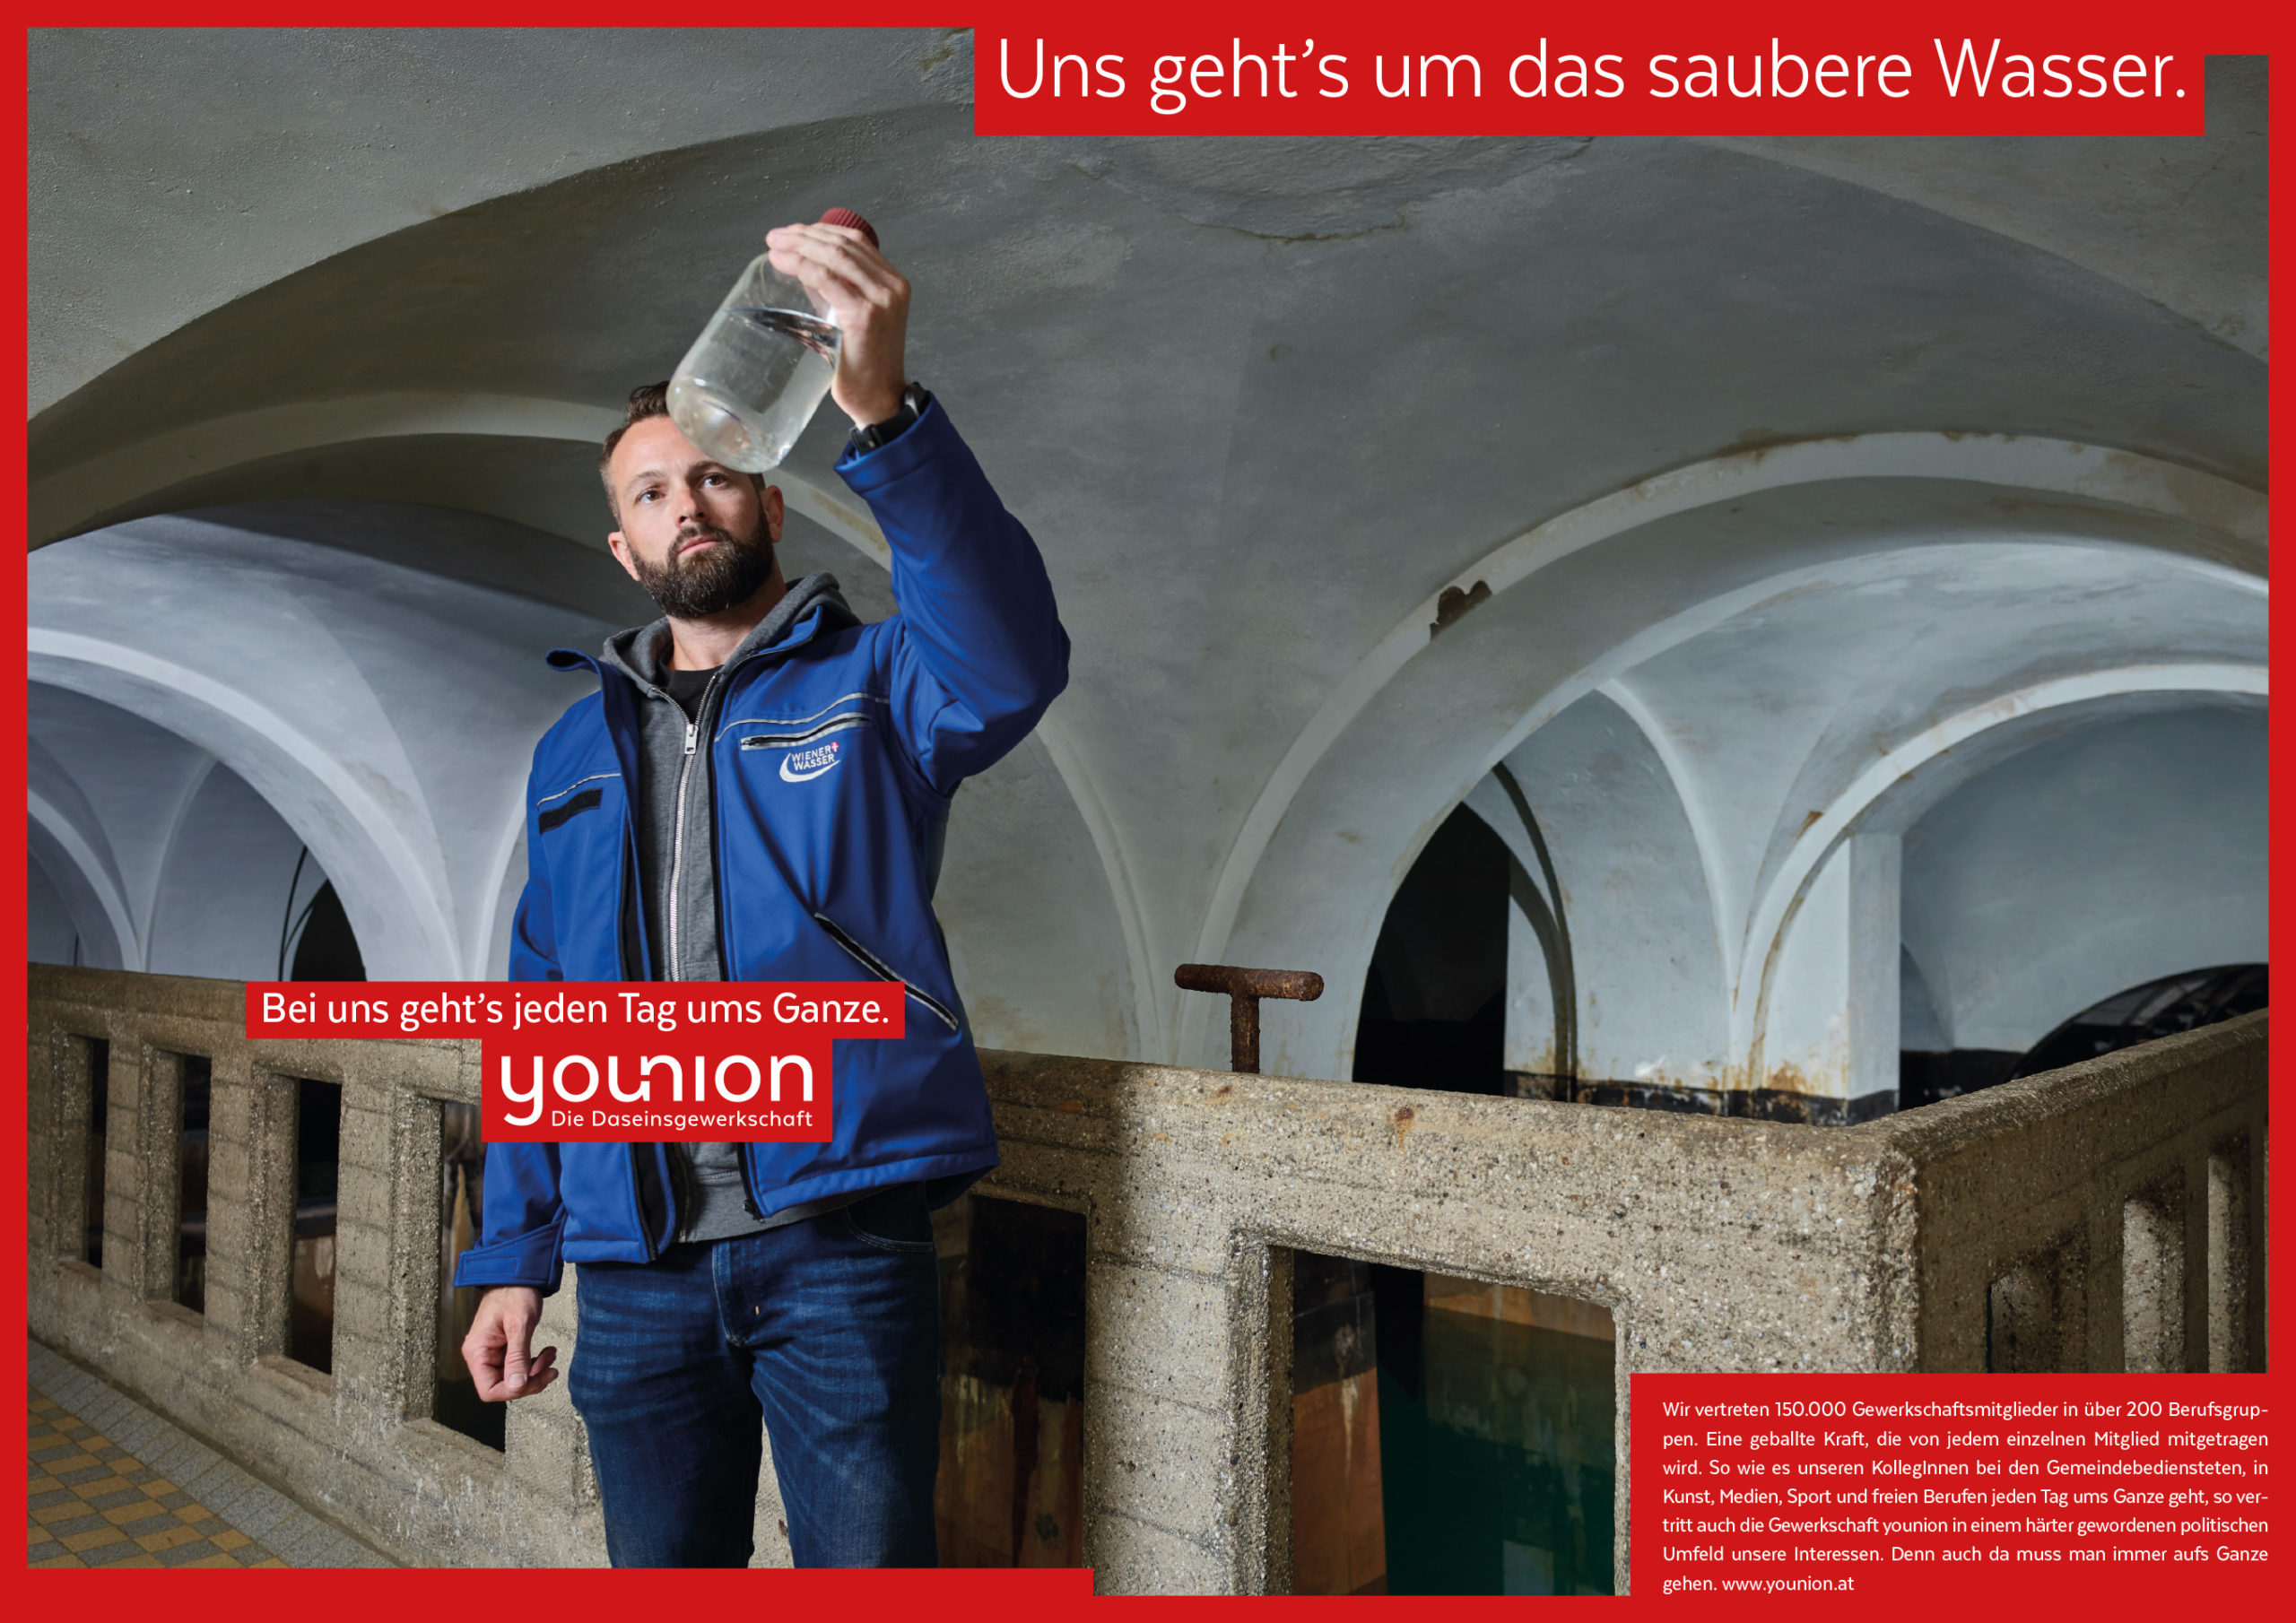 Younion-Kampagne-Sujet-9-scaled.jpg